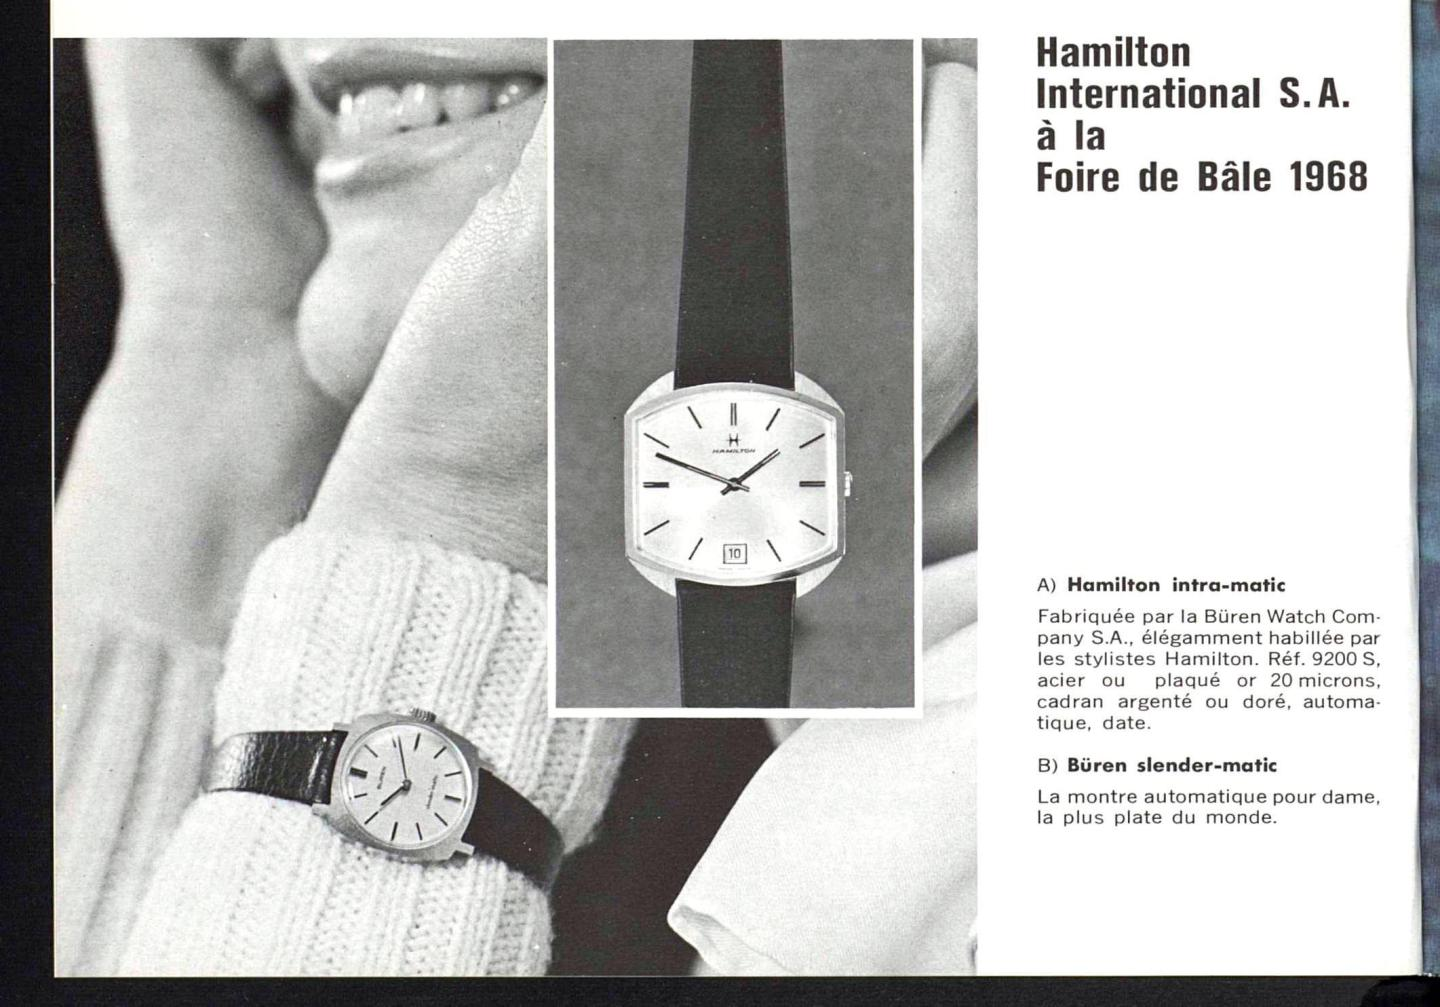 The Hamilton Intra-Matic collection at the Basel Fair in 1968. Published in Europa Star Magazine 4/1968.